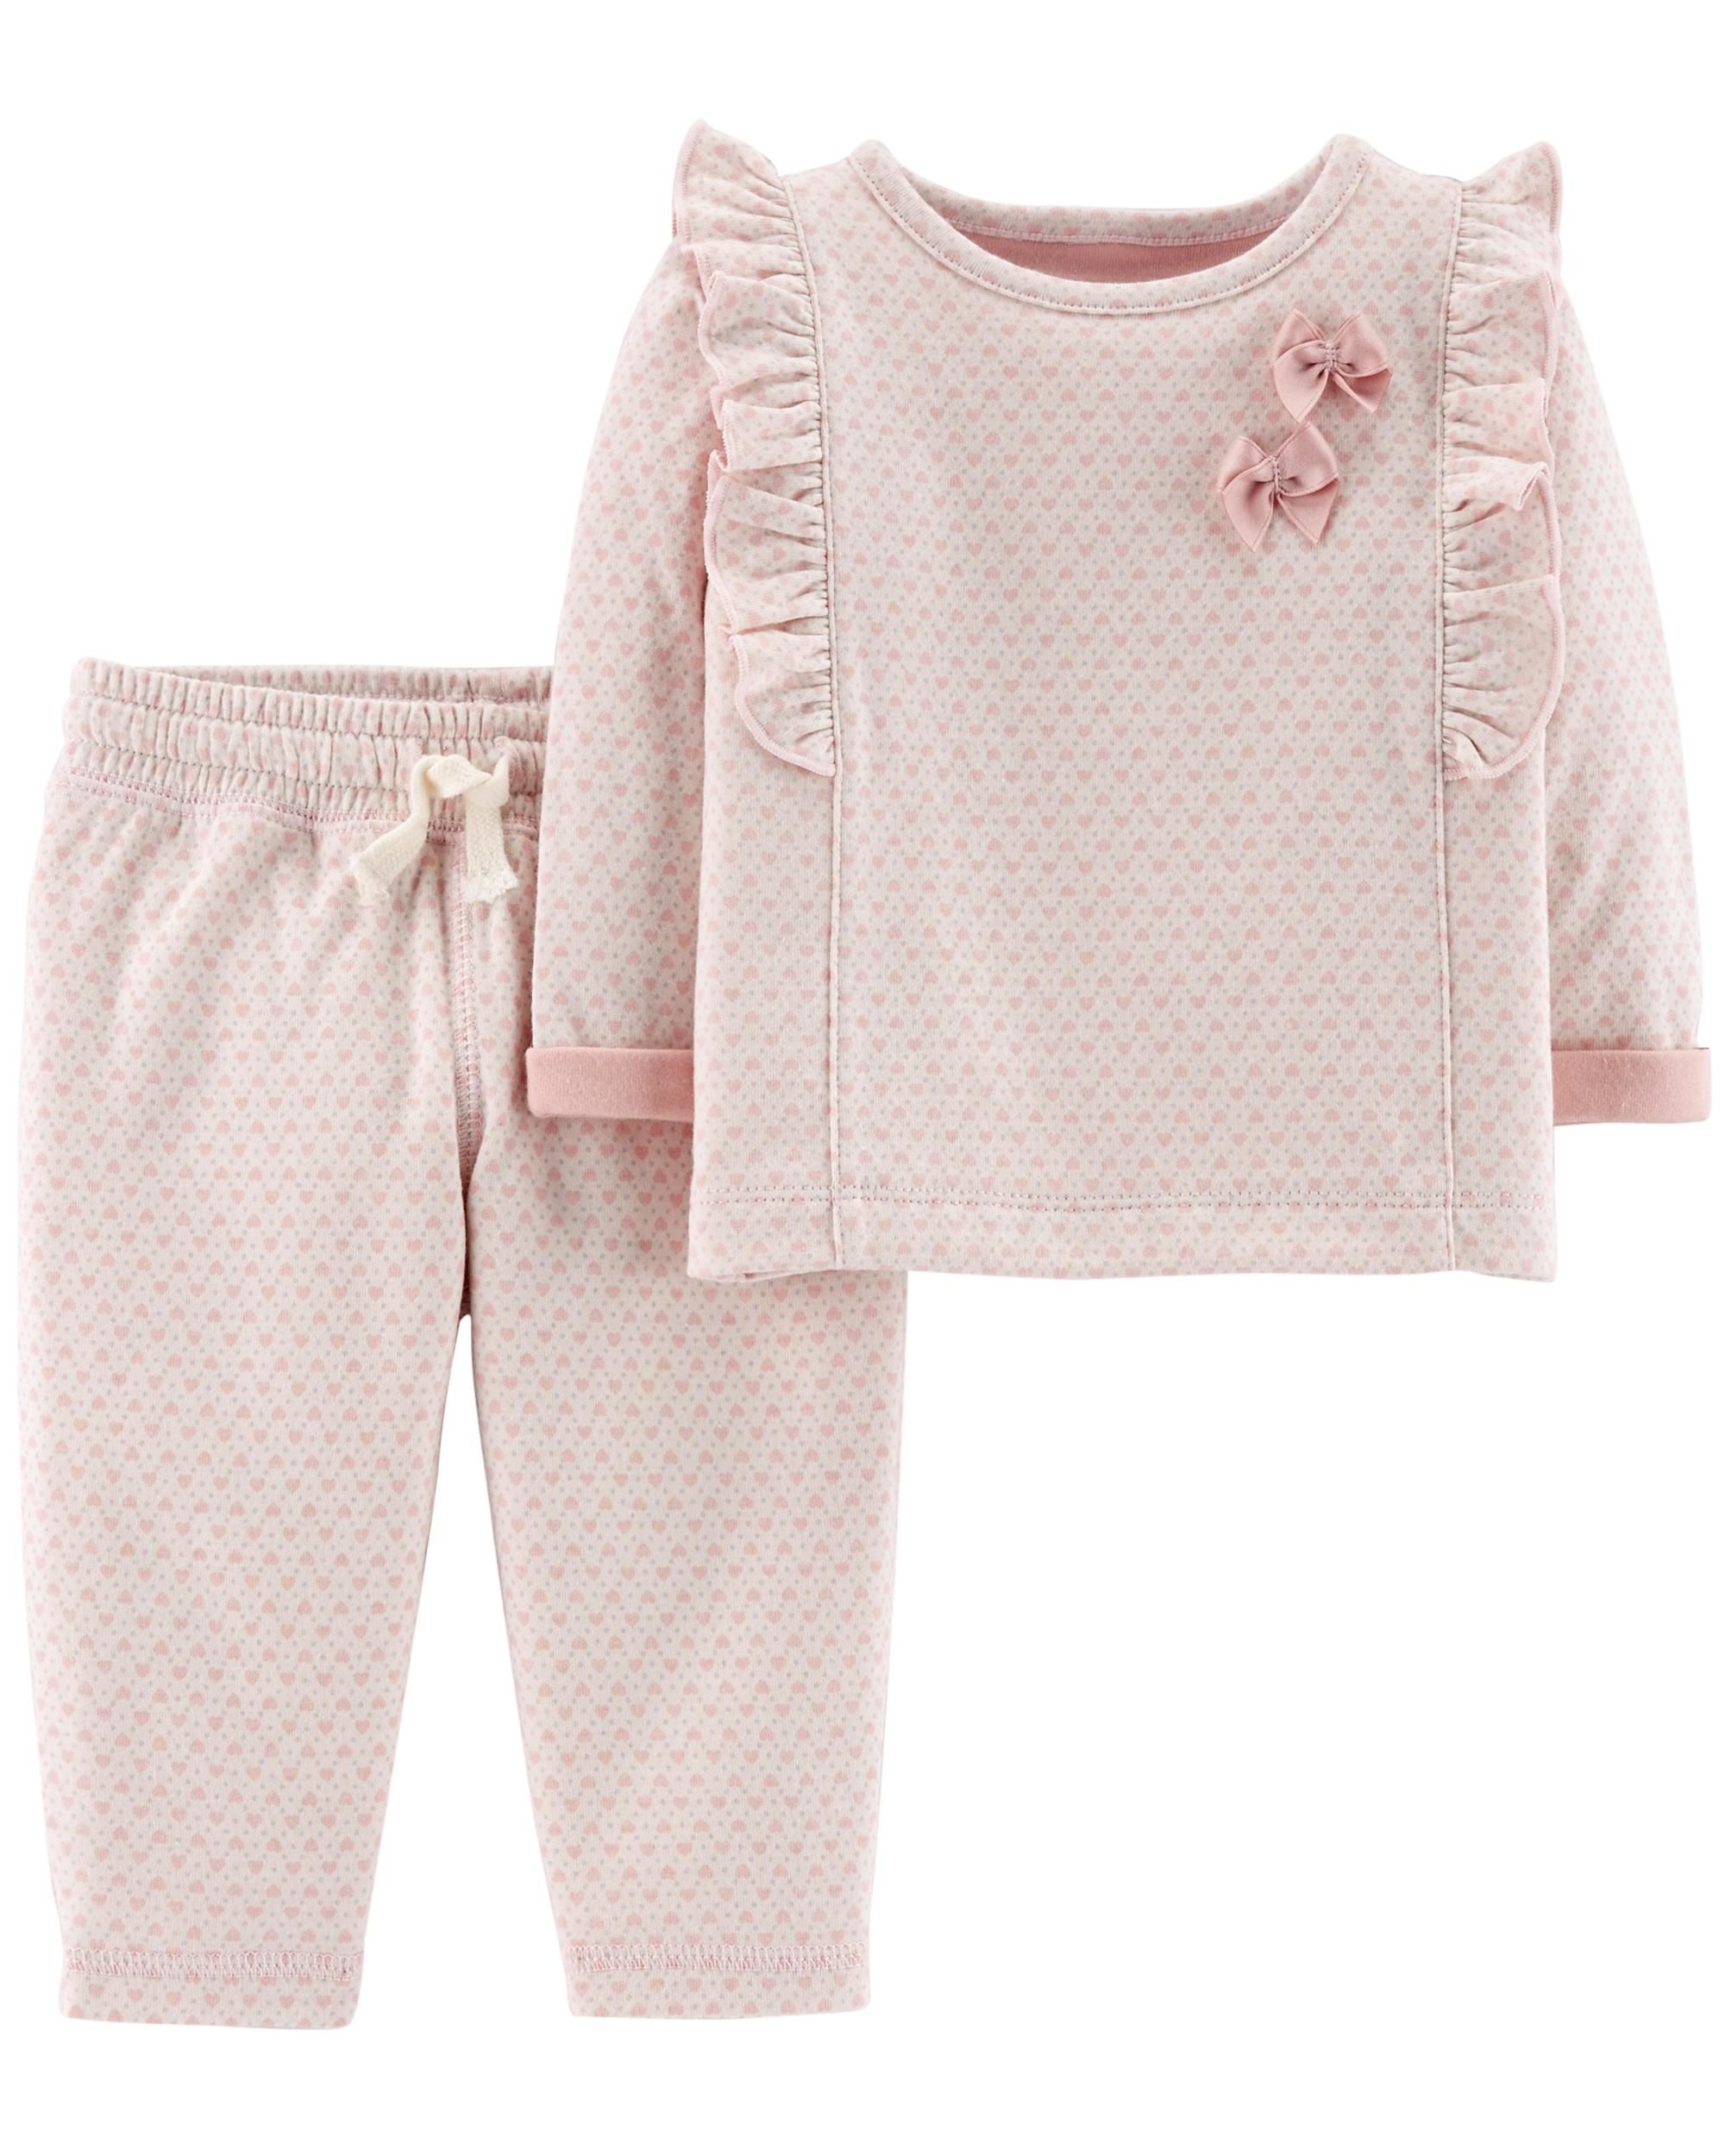 4-Piece Polka Dot Top & Pant Set  Baby girl clothes winter, Baby